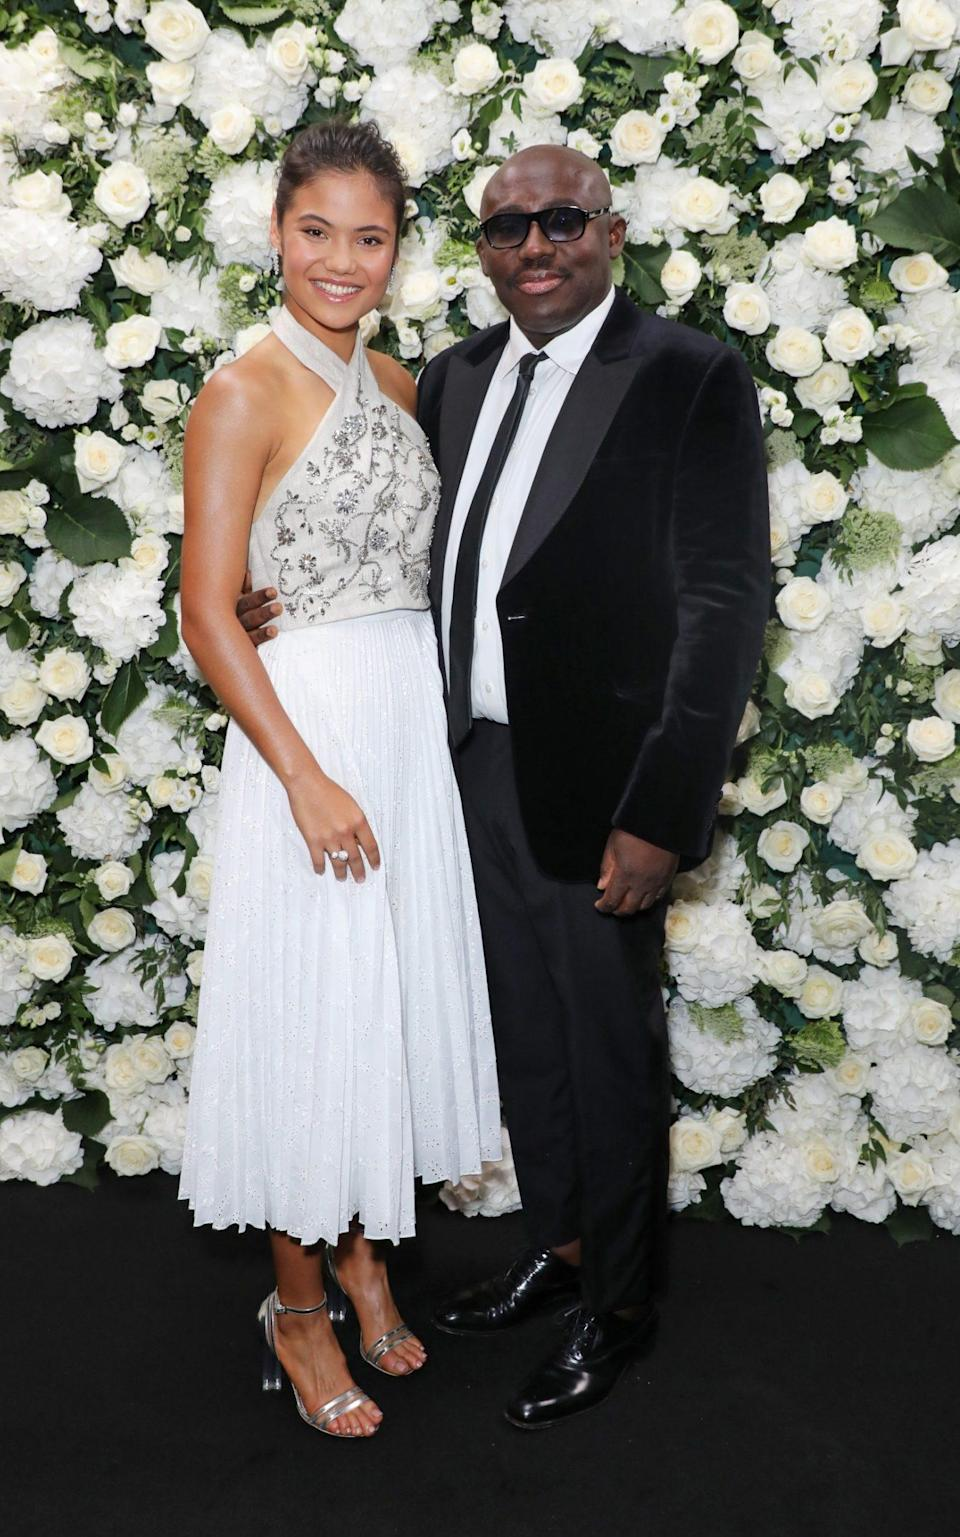 Emma Raducanu at the Vogue x Tiffany LFW party with British Vogue editor Edward Enninful. Emma is wearing jewellery by Tiffany, and a look from Erdem's new collection - Getty